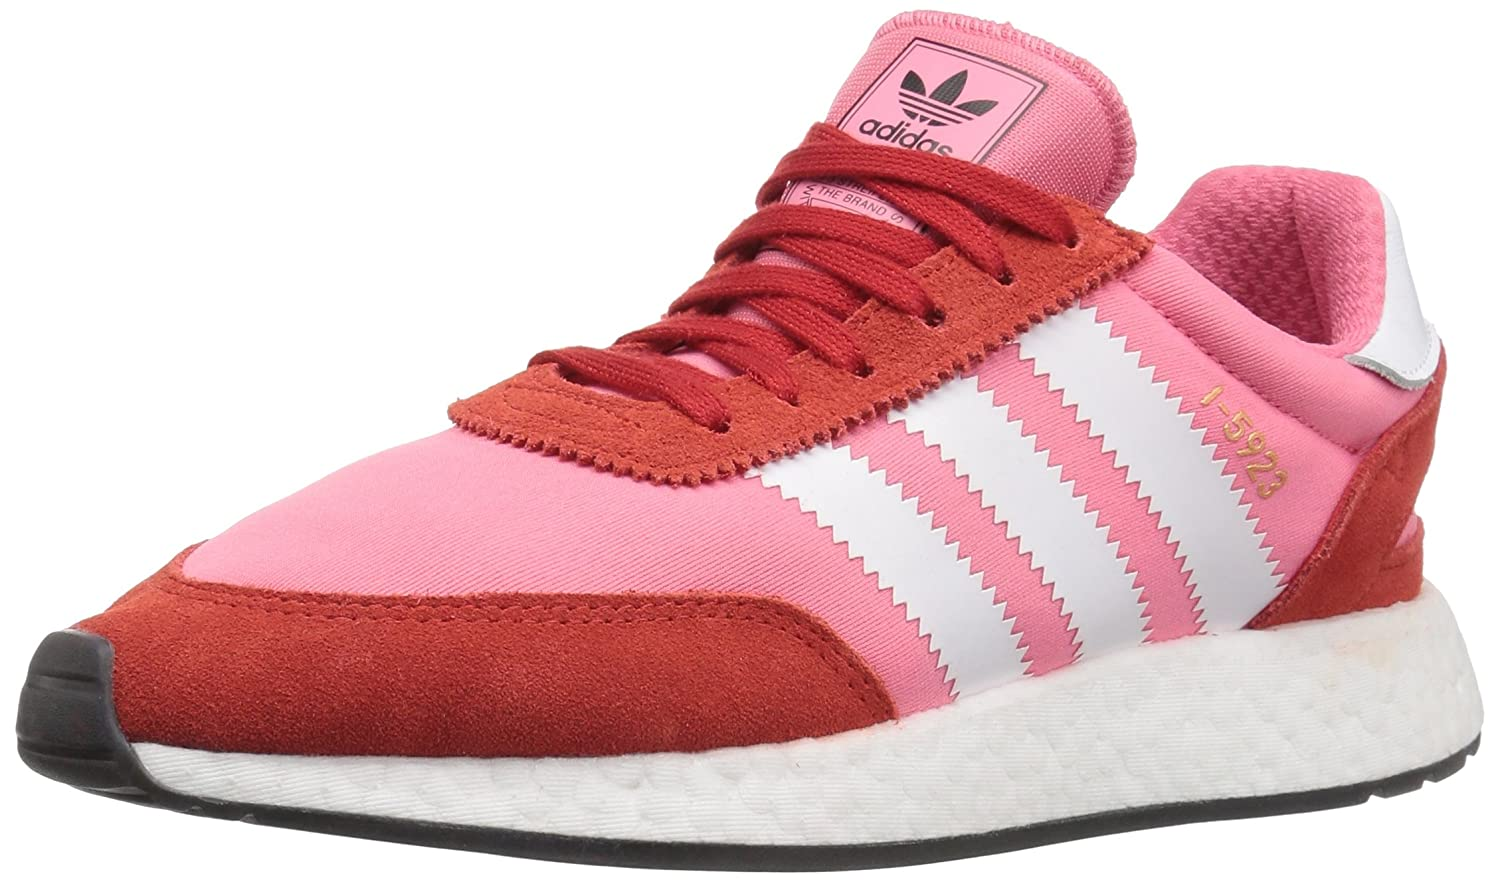 adidas Originals Women's I-5923 B07C6V6NLL 10.5 B(M) US|Chalk Pink/White/Red